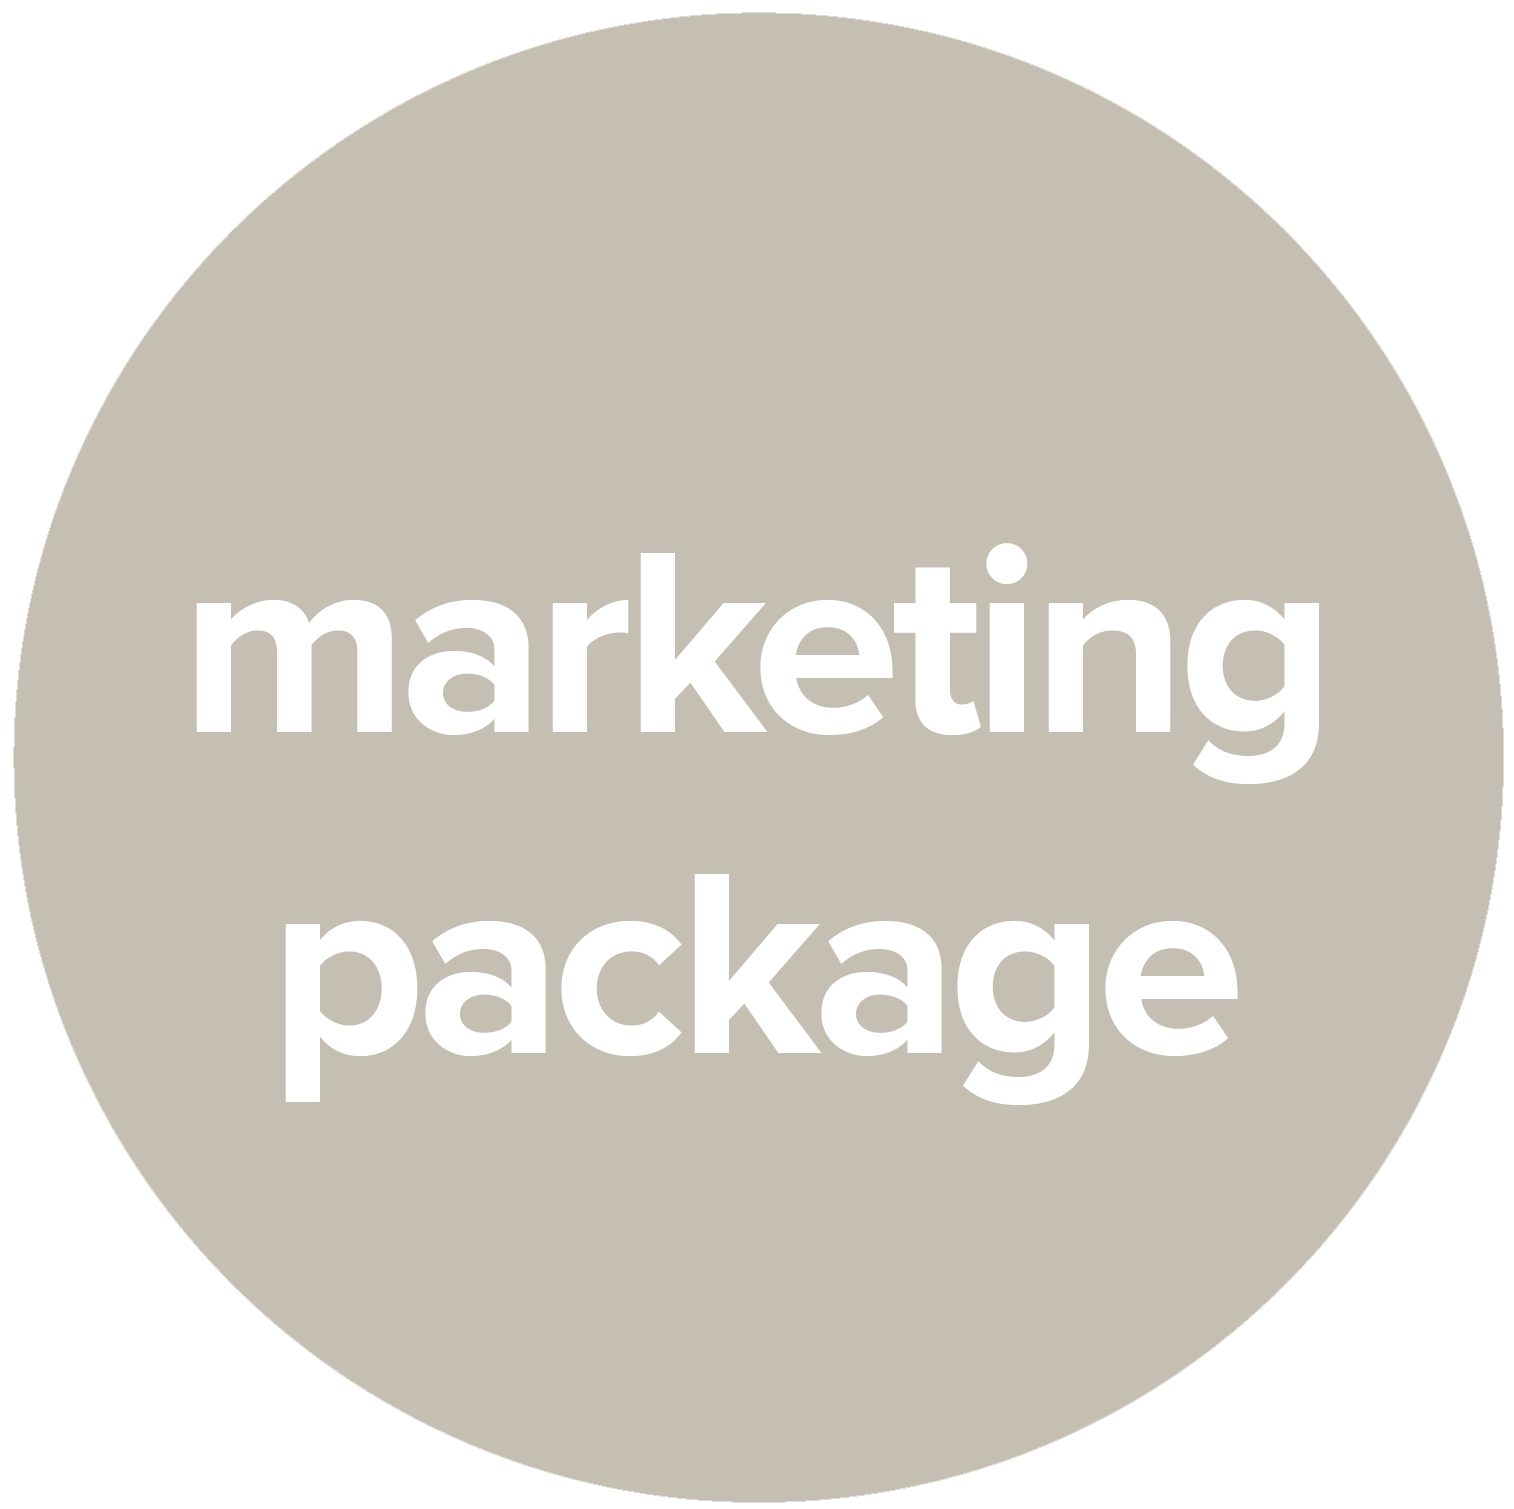 packages-marketing